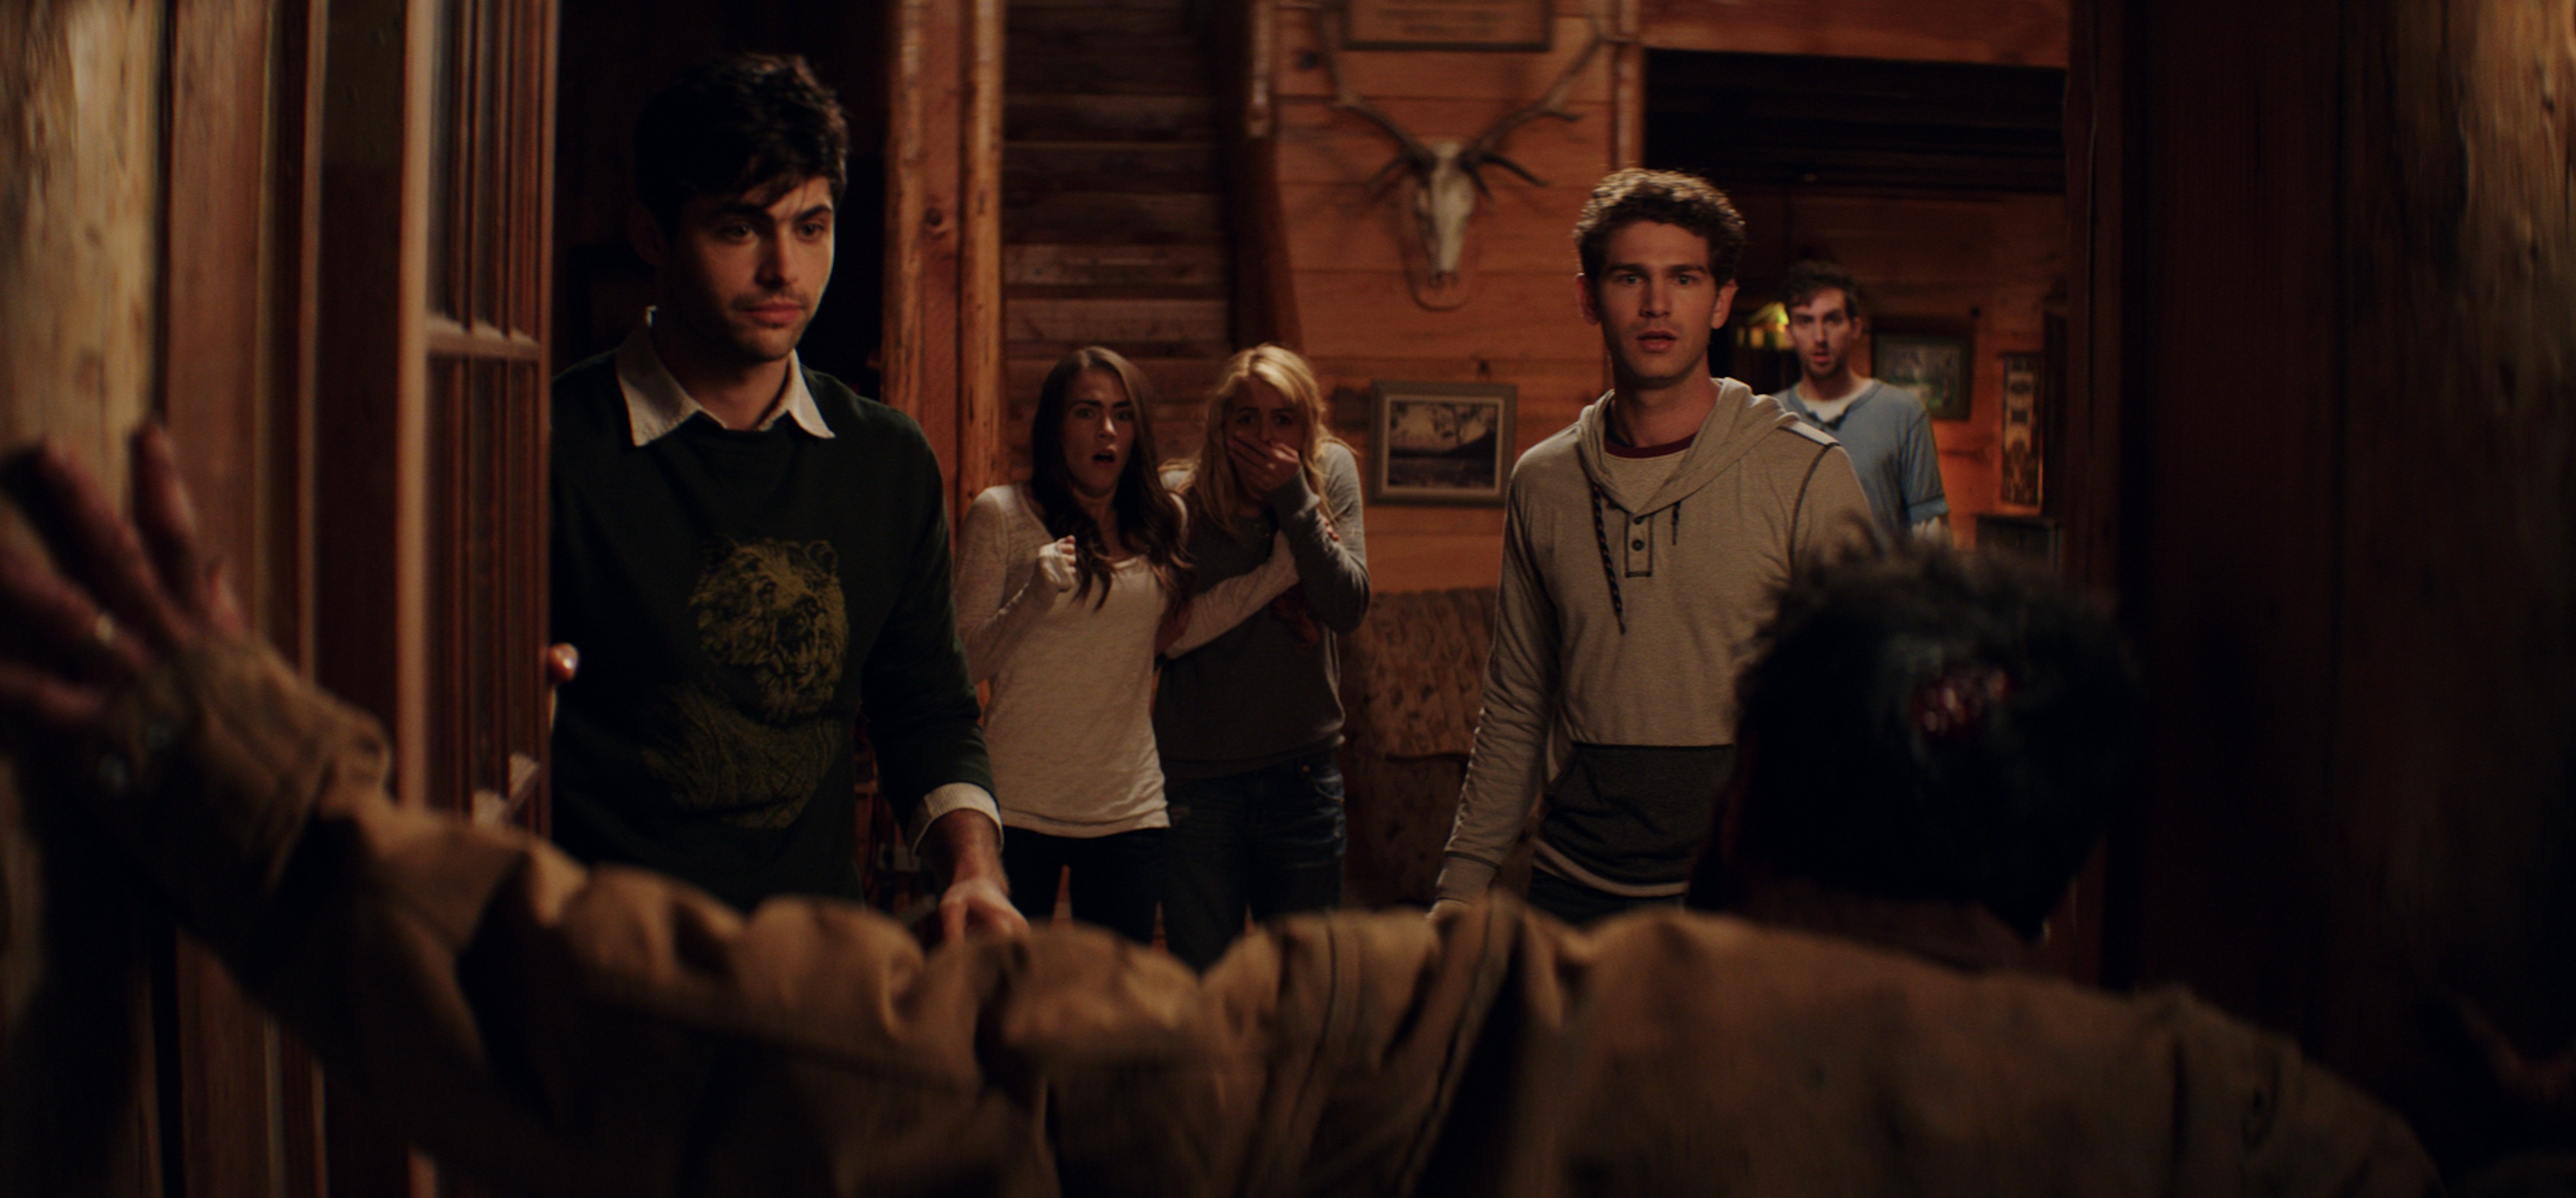 CABIN-FEVER-image-via-IFC-Midnight